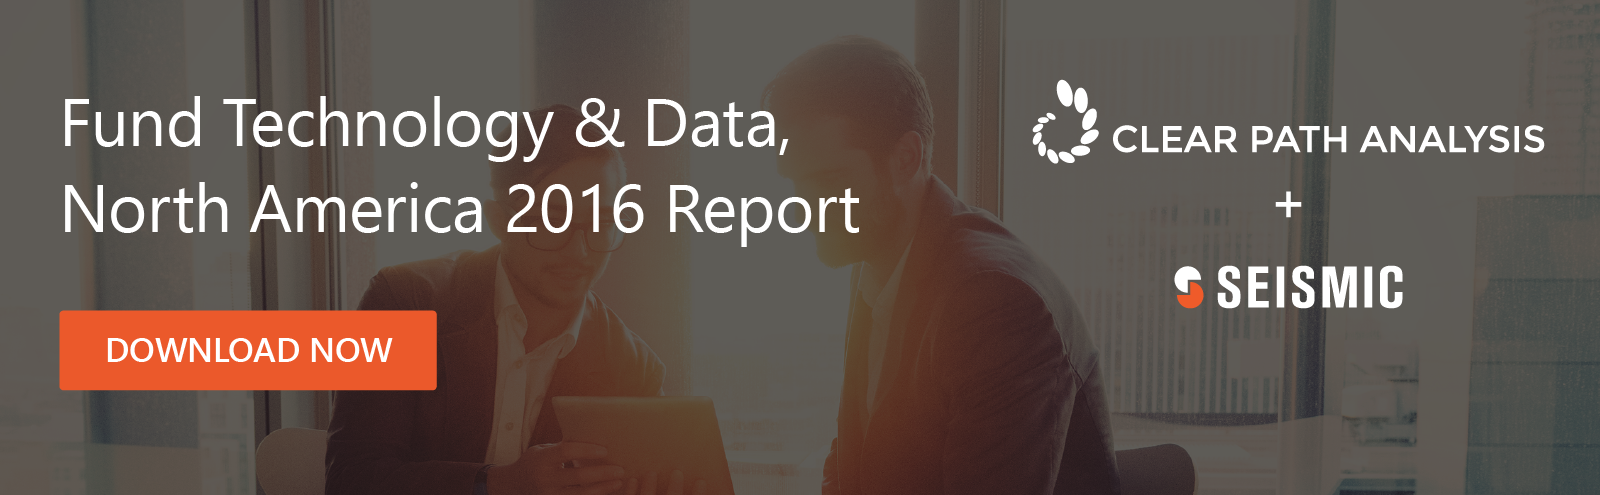 An Excerpt from Clear Path Analysis' 2016 Fund Technology & Data Report